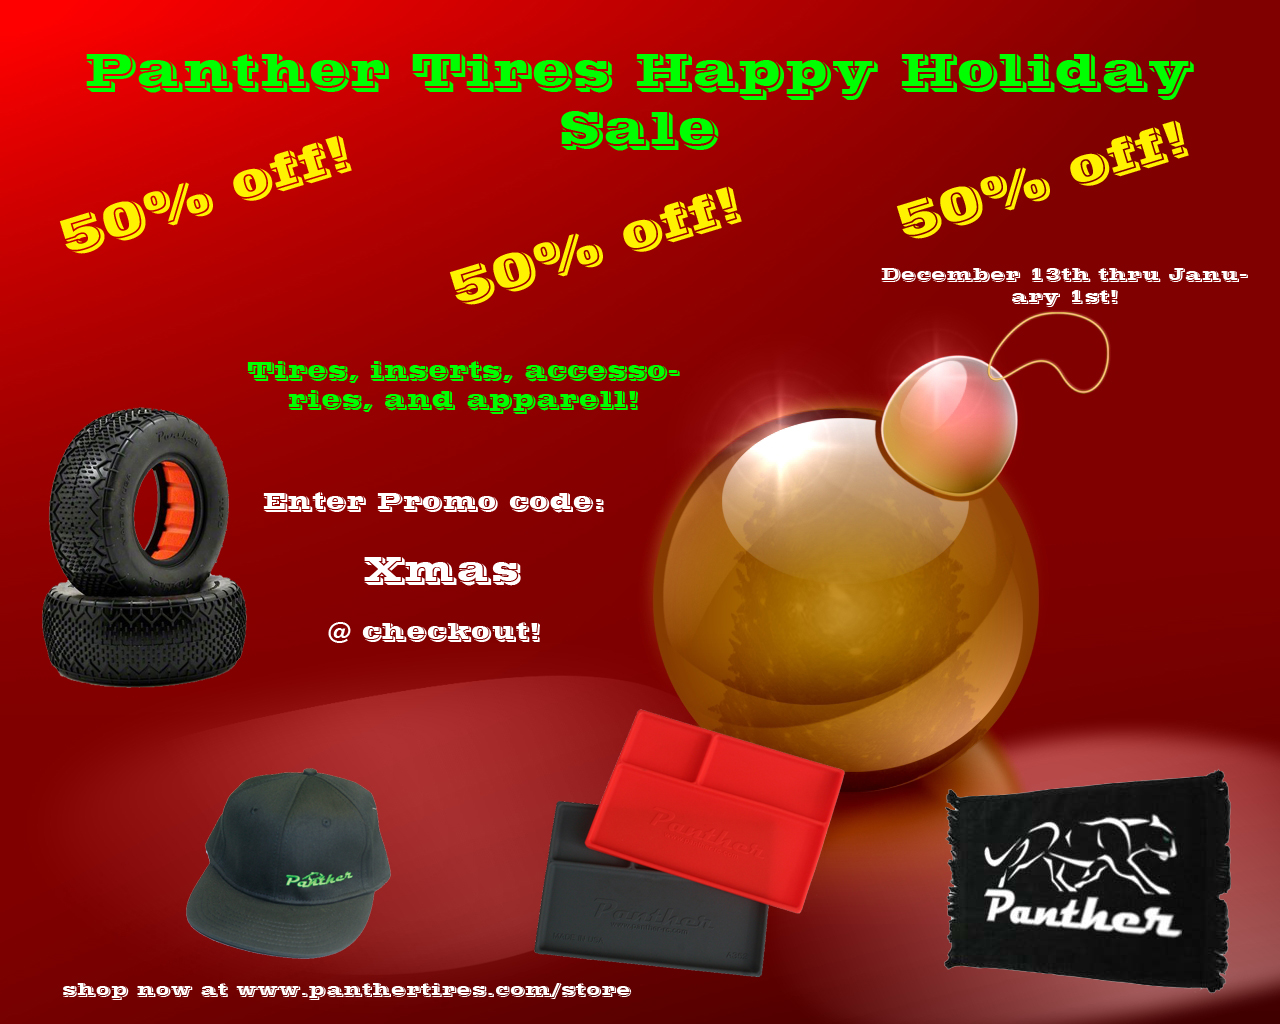 2013 Happy Holiday Sale